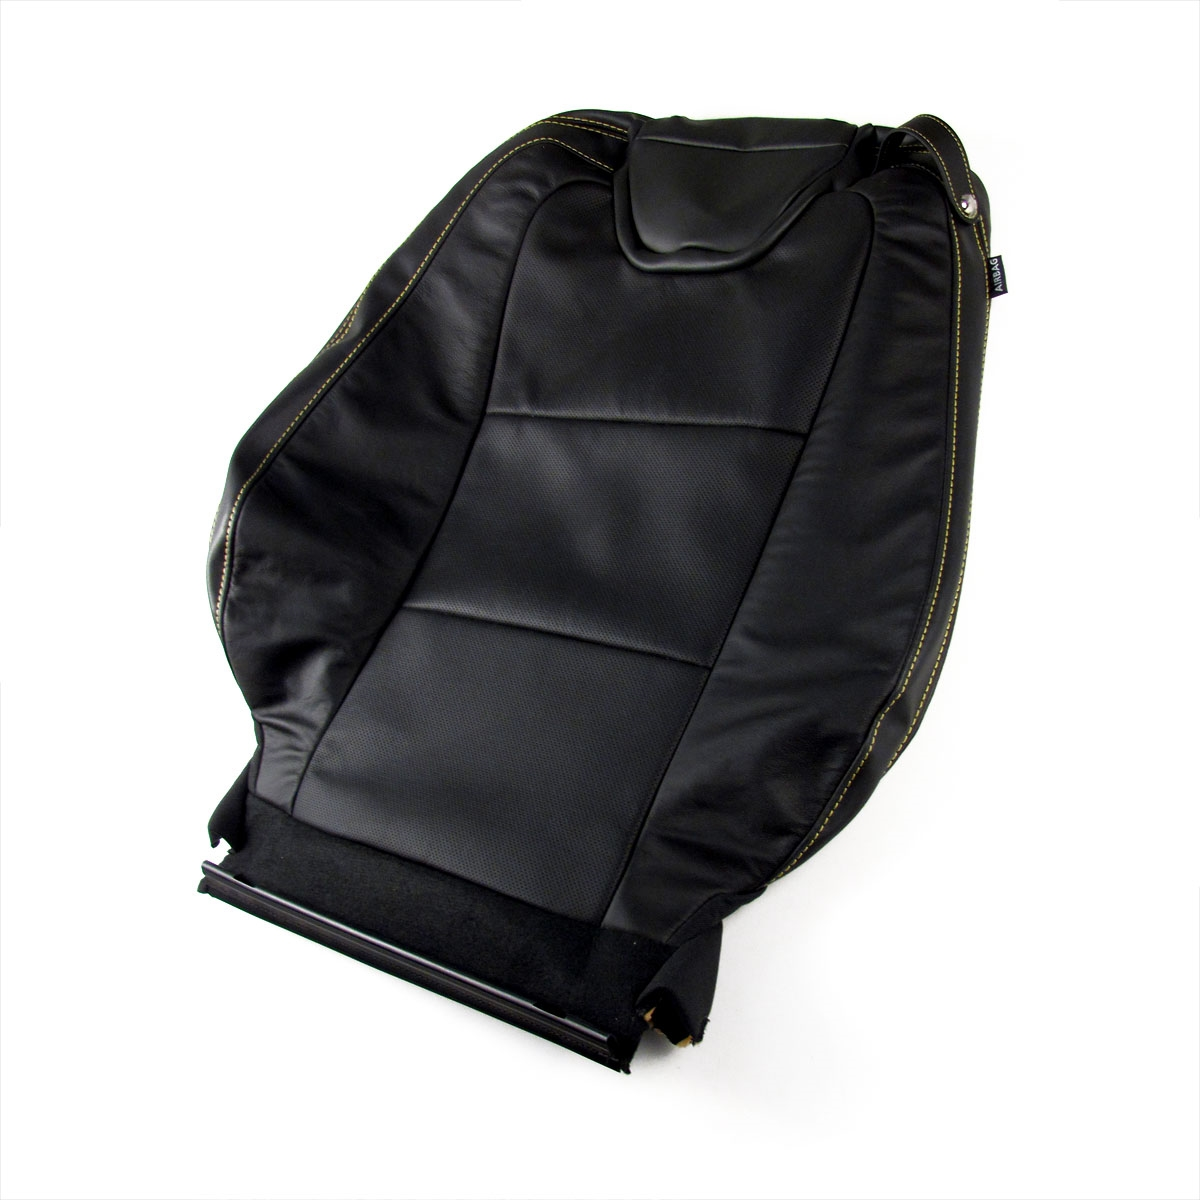 Awesome Driver Left Front Back Seat Cover Part No 22816181 Ncnpc Chair Design For Home Ncnpcorg